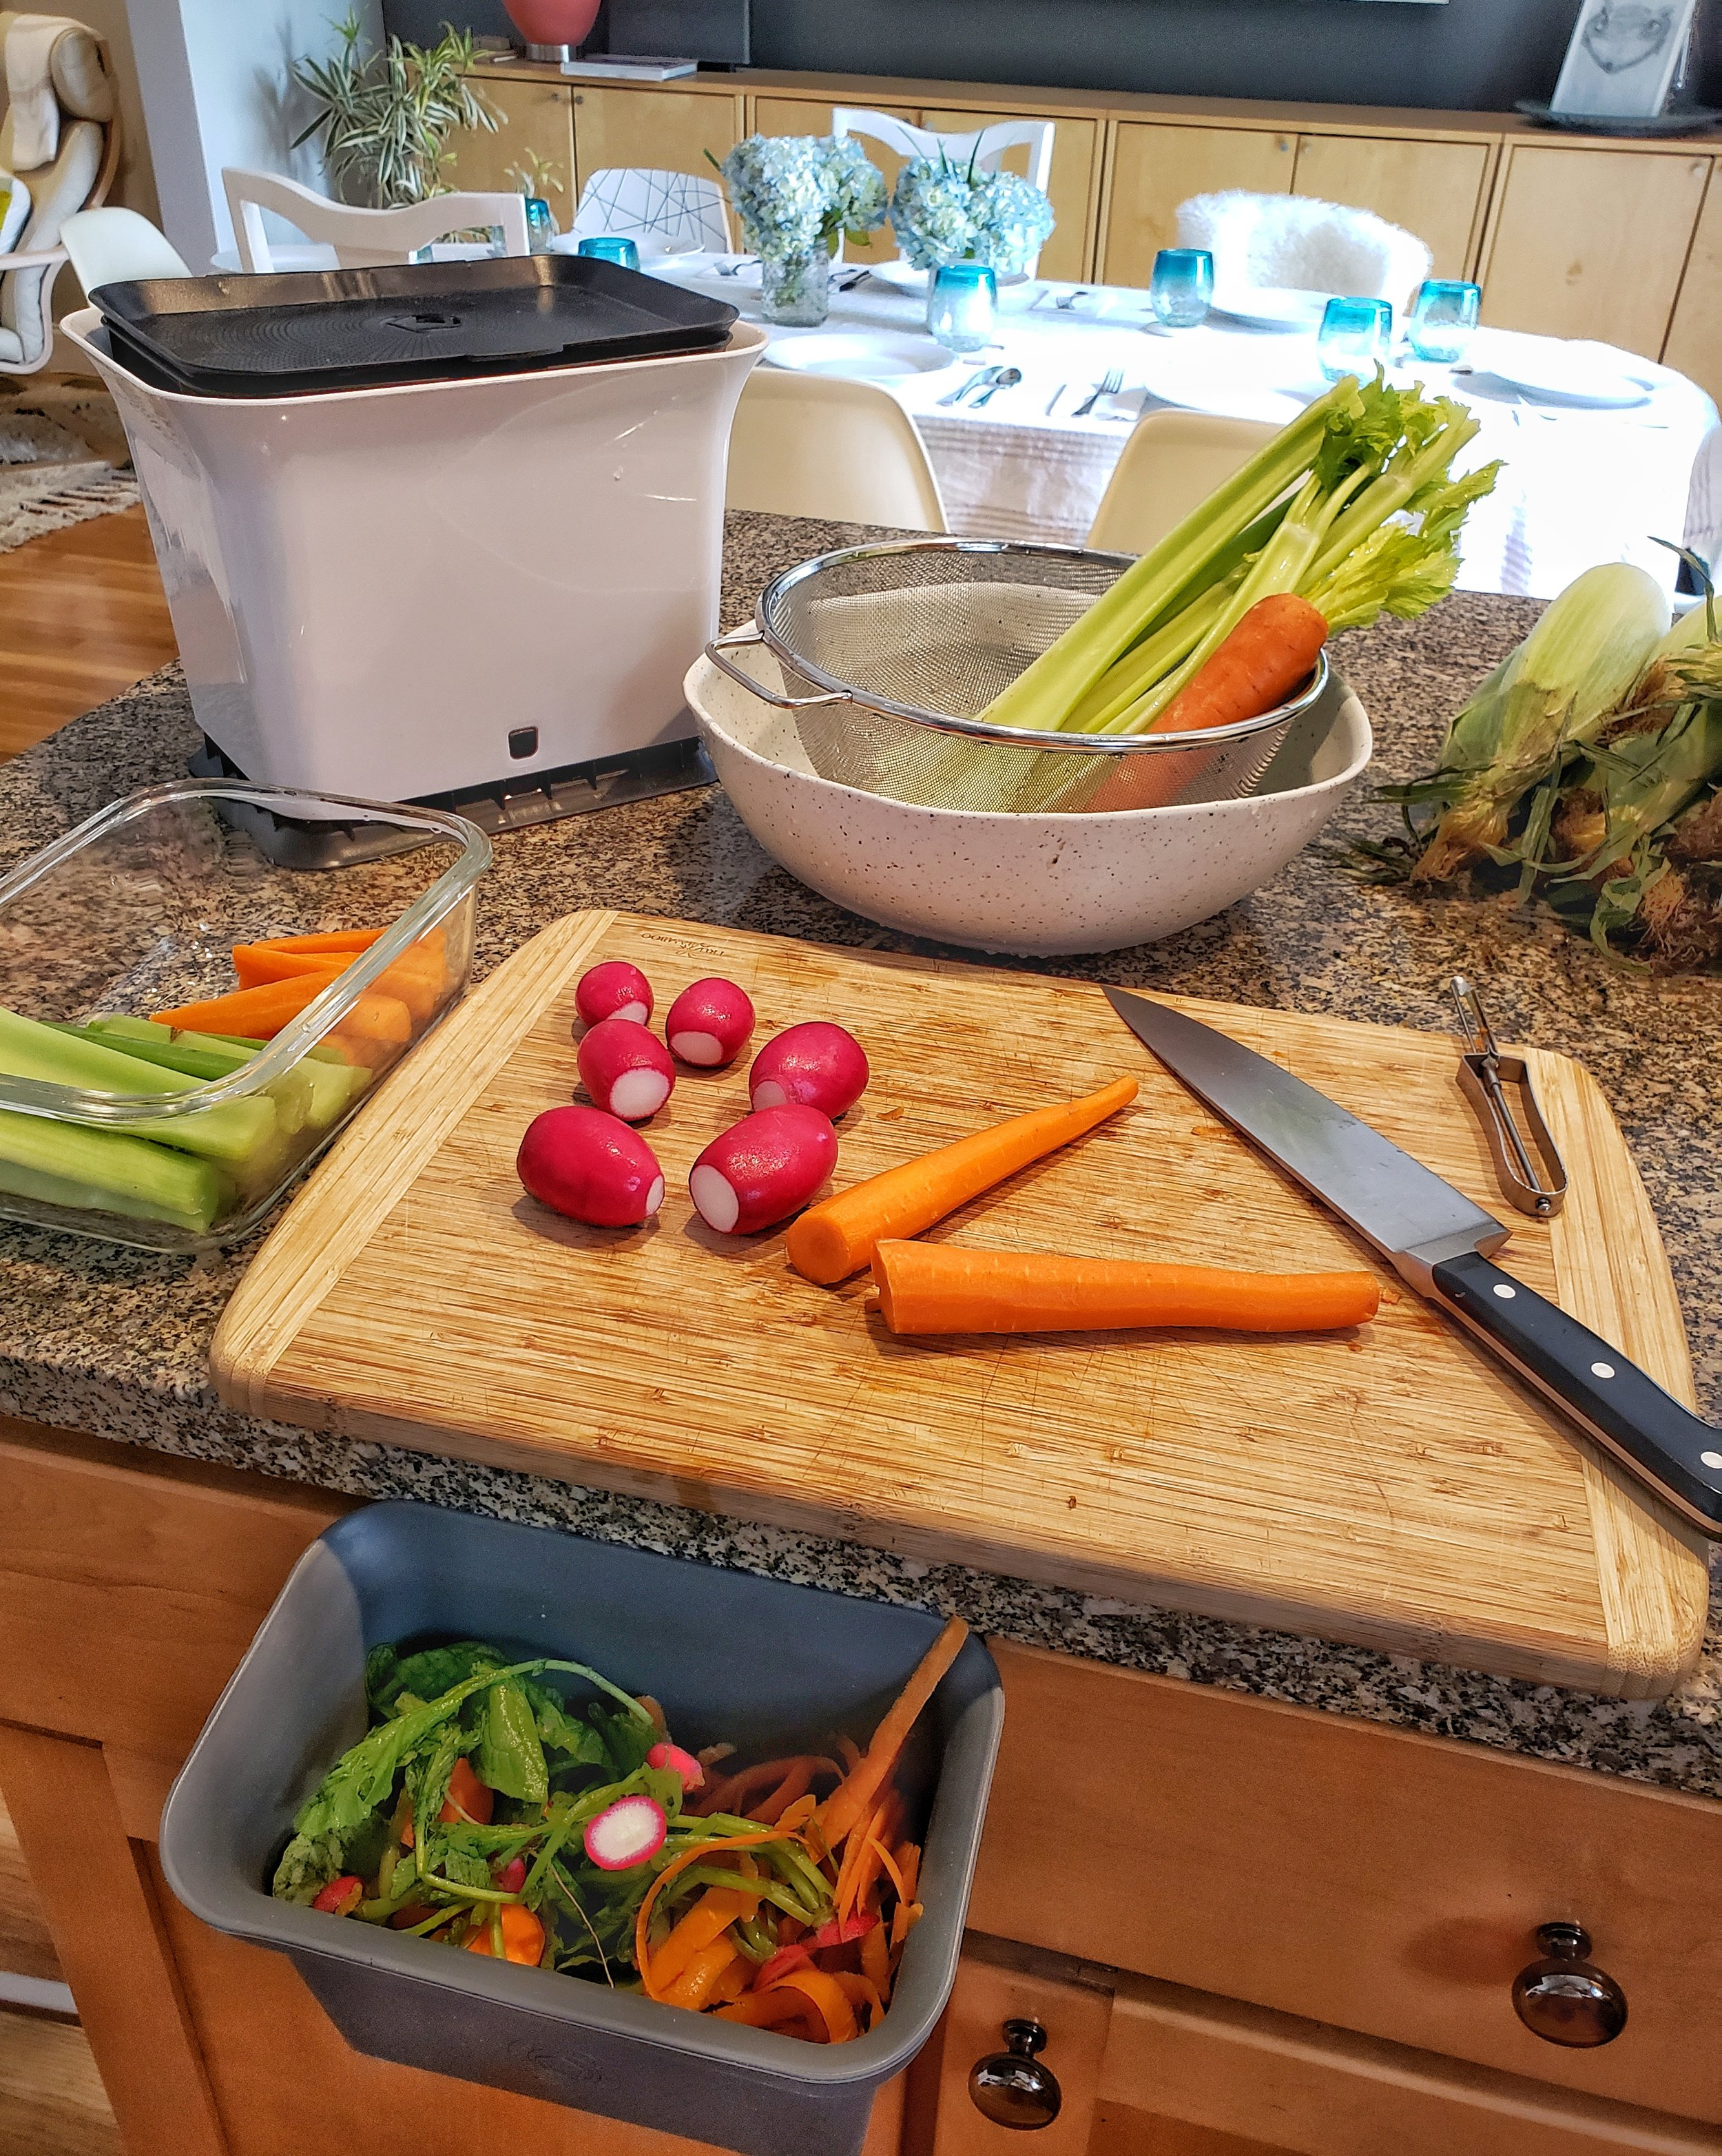 Classic Christine Koh produce prep before a dinner party!